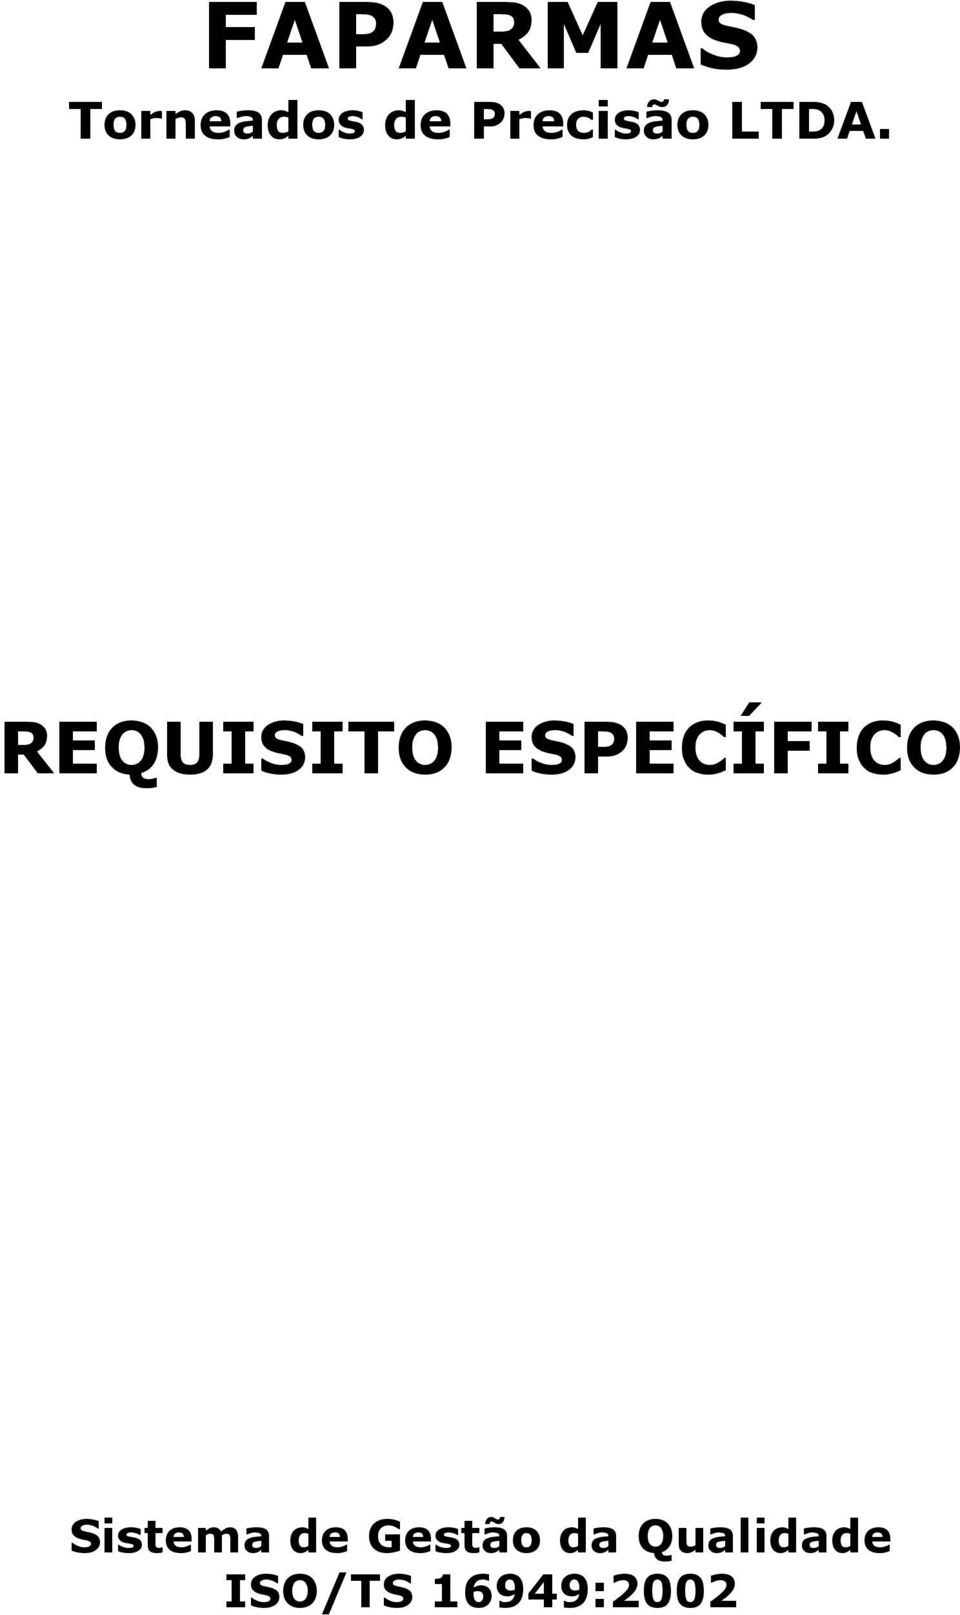 REQUISITO ESPECÍFICO